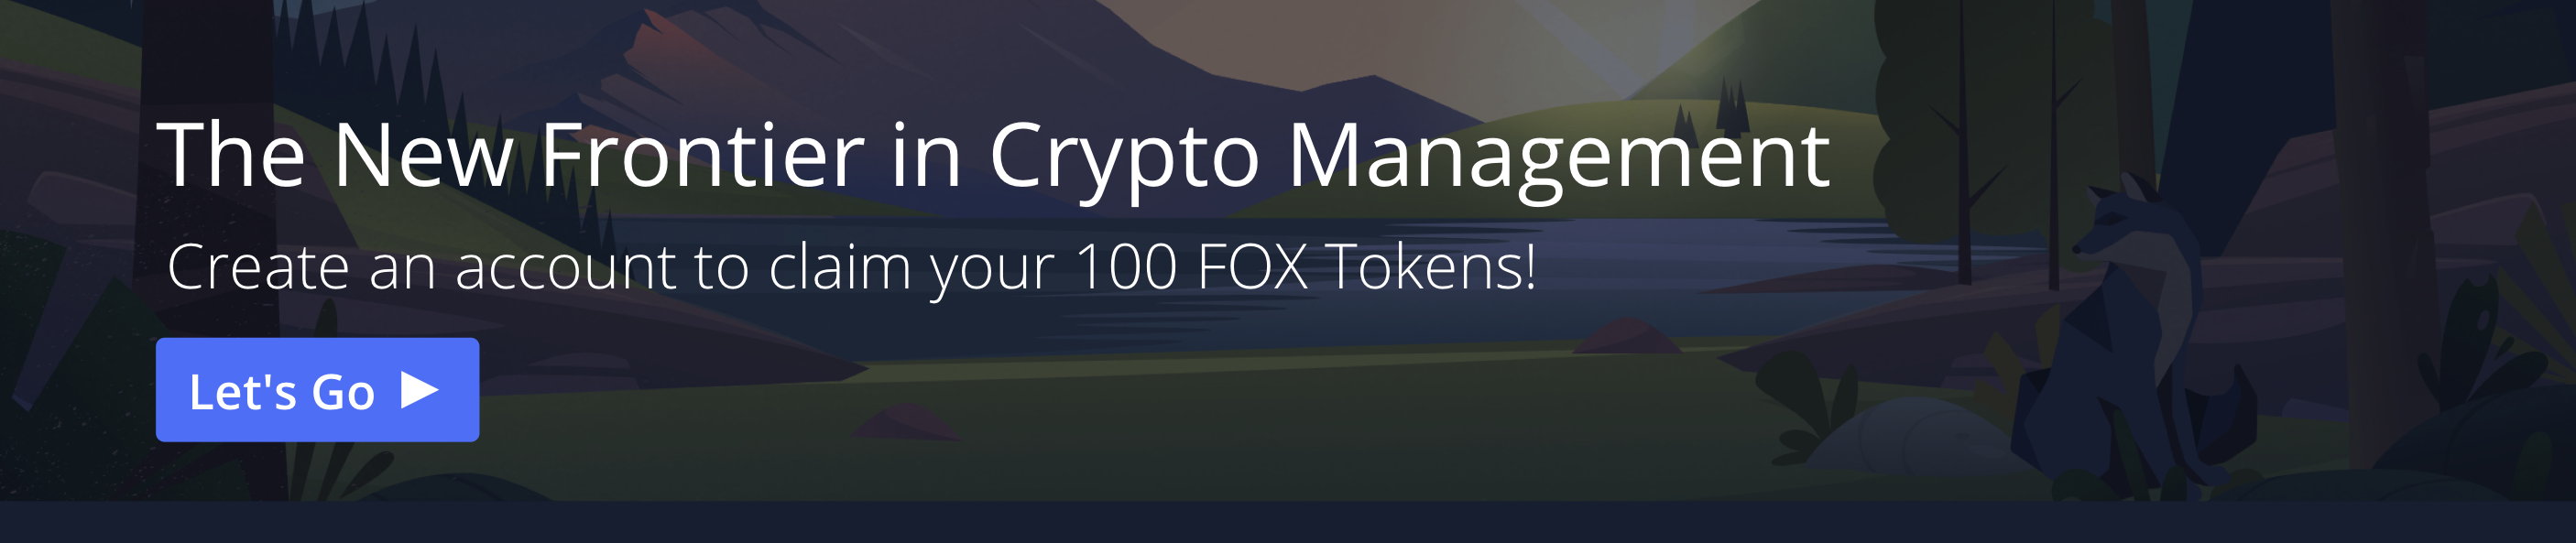 Create an account to claim your 100 FOX tokens at ShapeShift.com